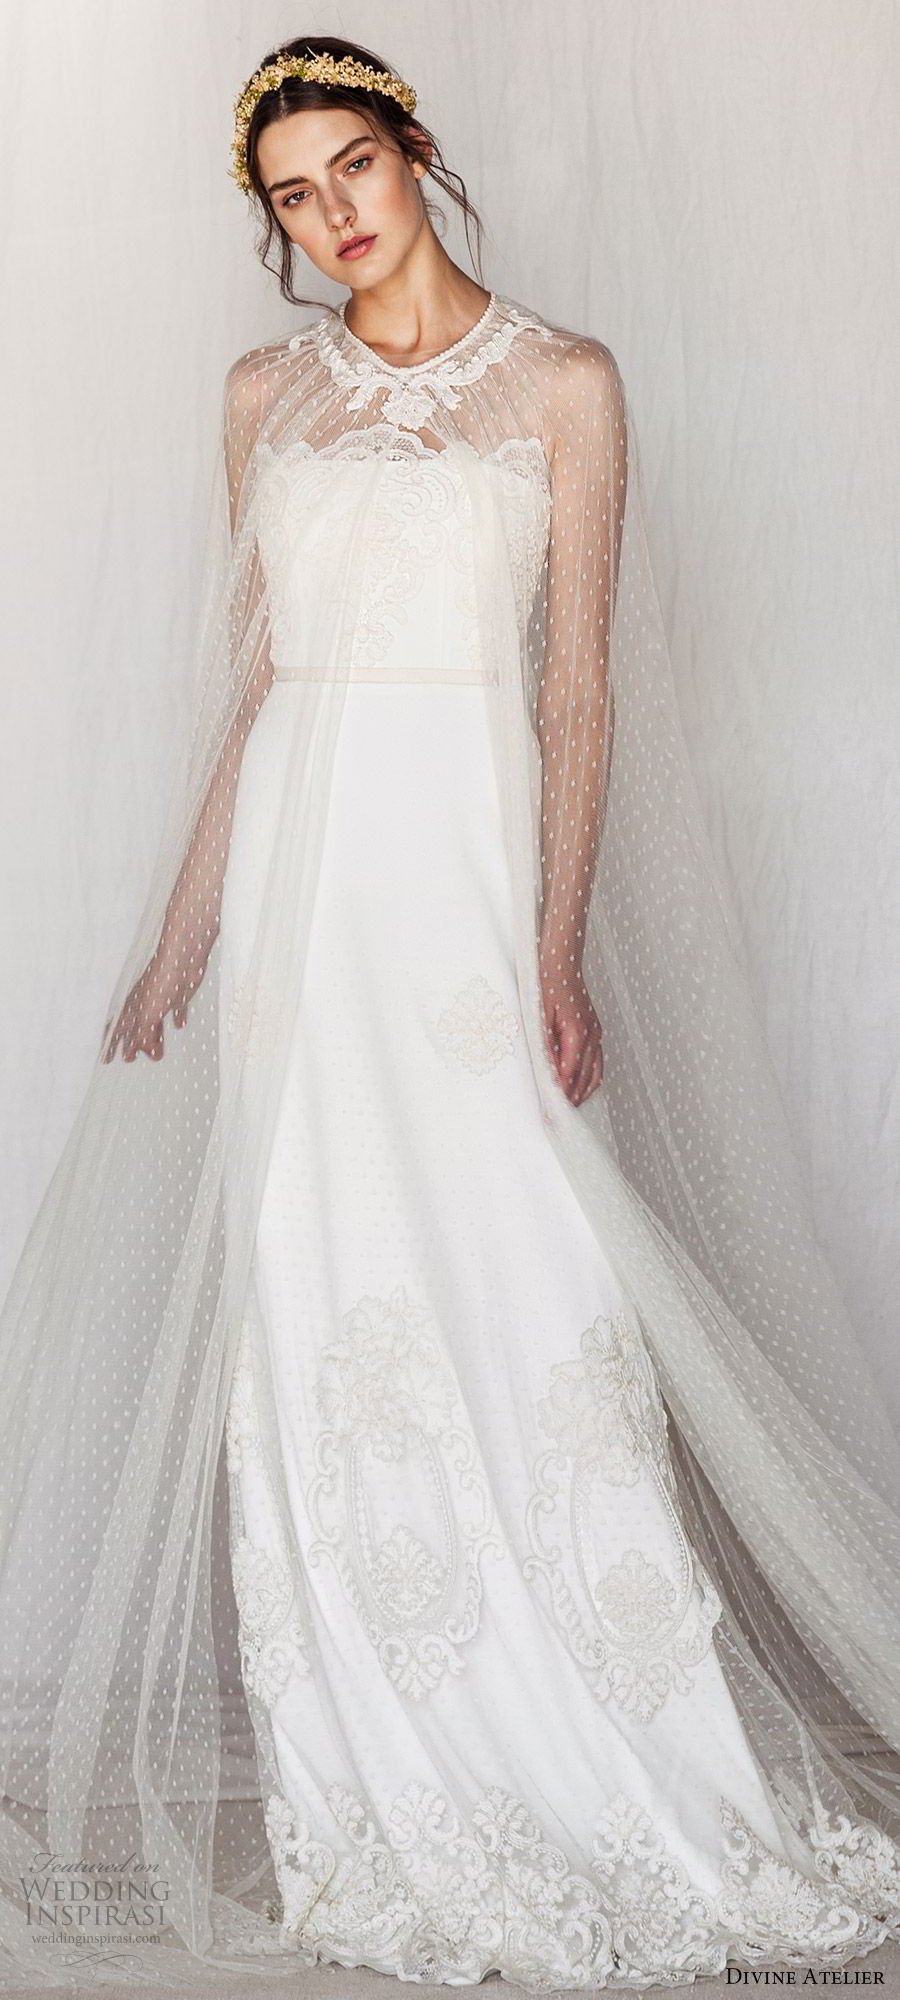 divine atelier 2019 bridal sleeveless illusion jewel straight across lace a line wedding dress sheer cape (13) sweep train romantic whimsical mv